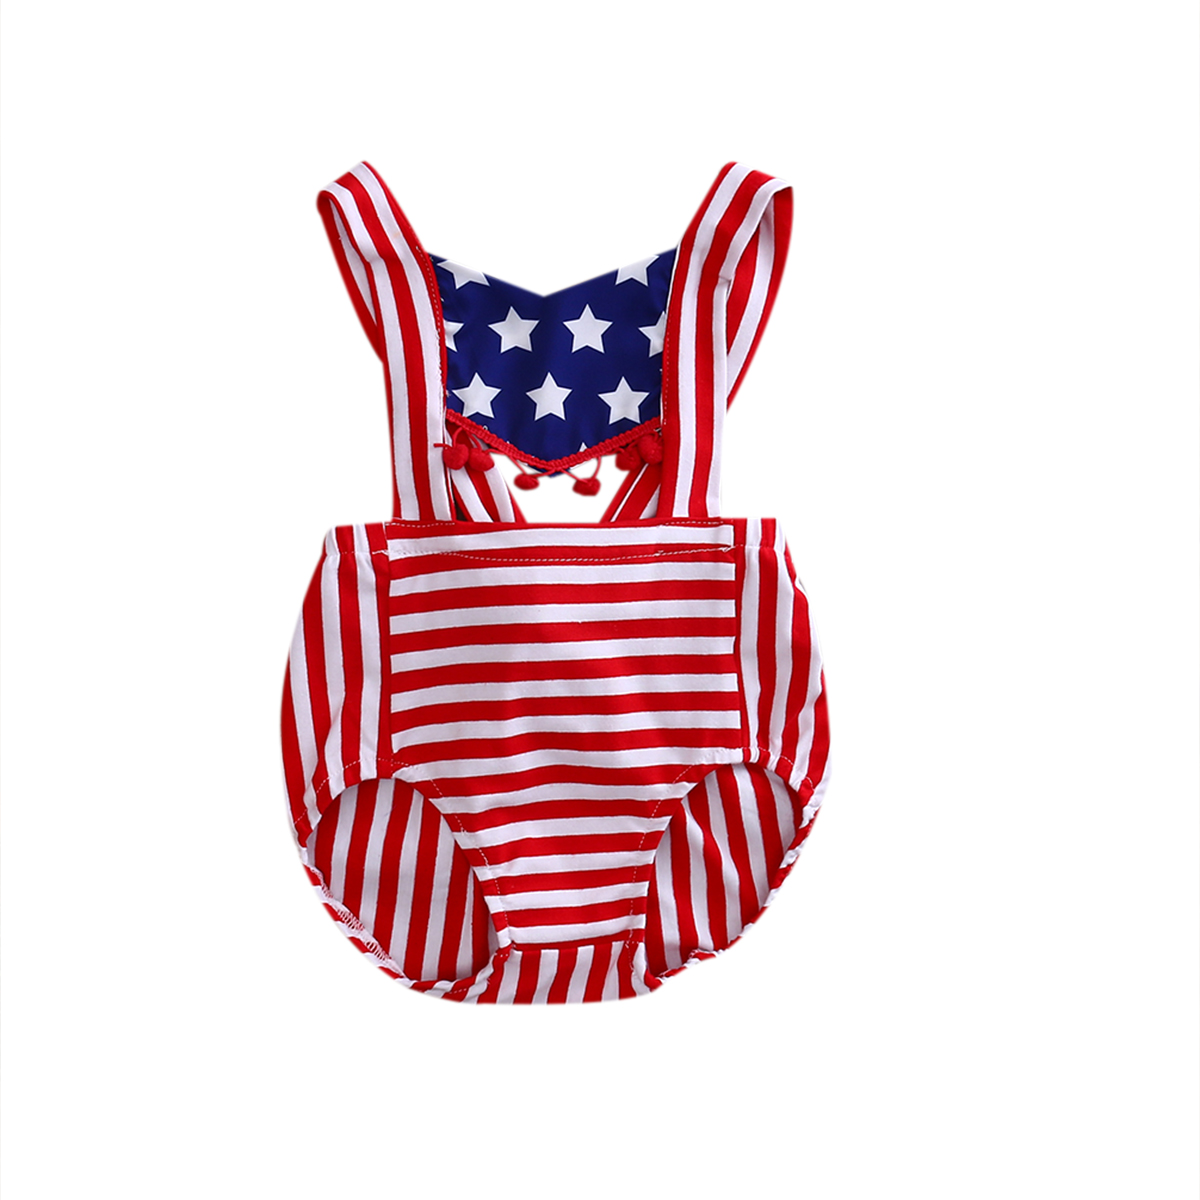 Summer Newborn Toddler Infant Baby Girl Romper Jumpsuit Striped Star Flag Romper Outfit Sunsuit Clothes toddler newborn infant baby girl floral romper jumpsuit outfits summer baby girl clothes sunsuit cotton baby onesie outfit